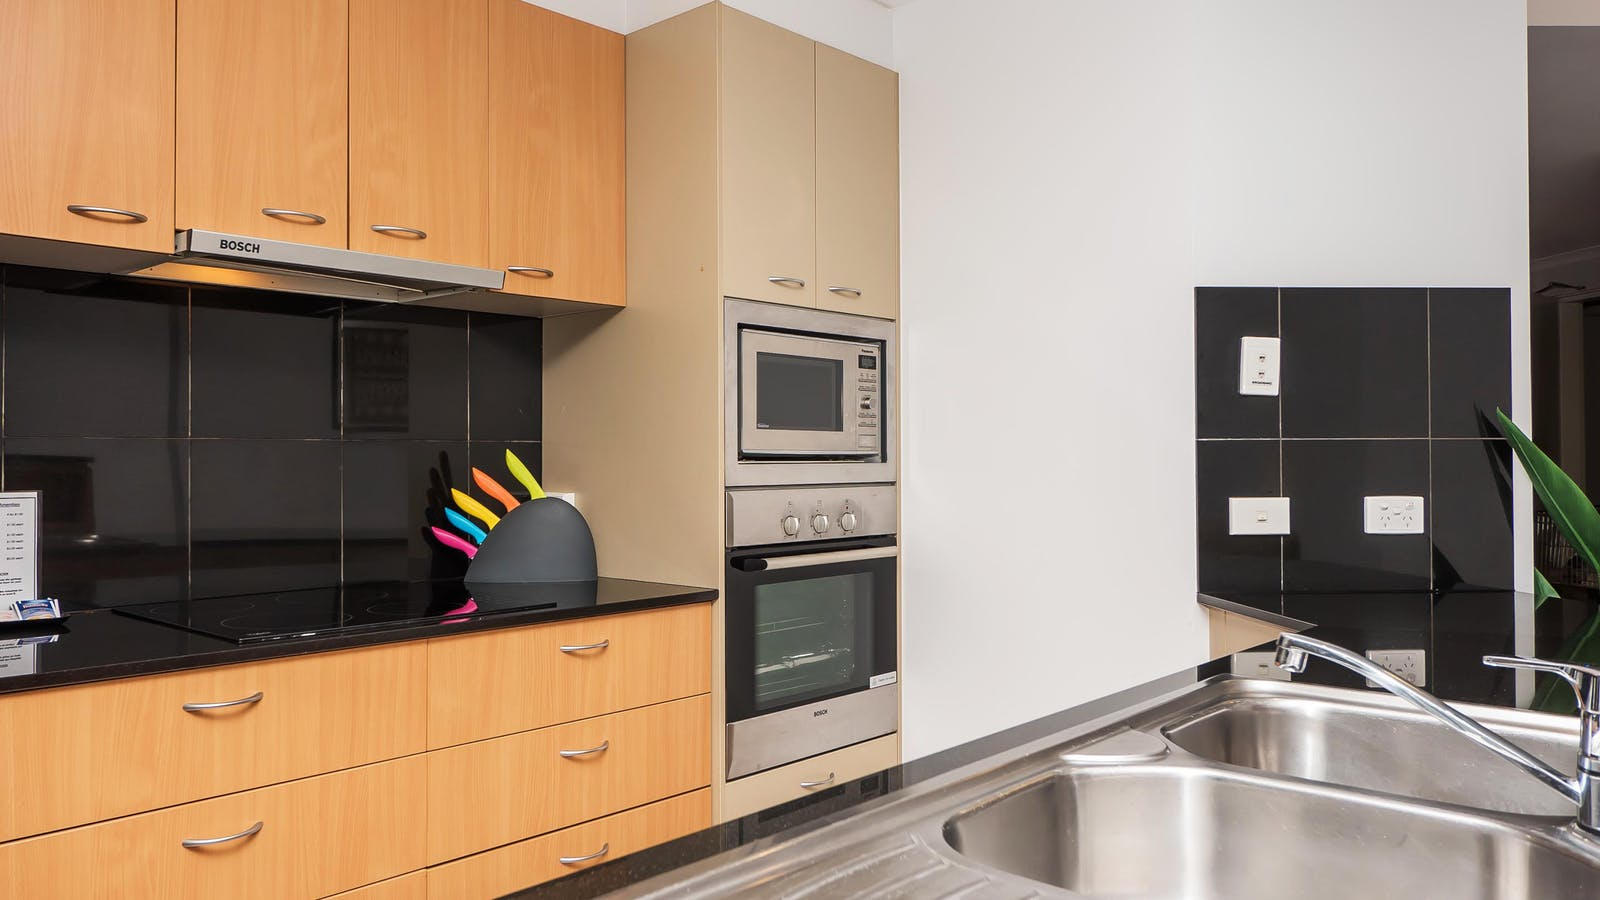 Photo showing sink oven and microwave in a well lit clean kitchen